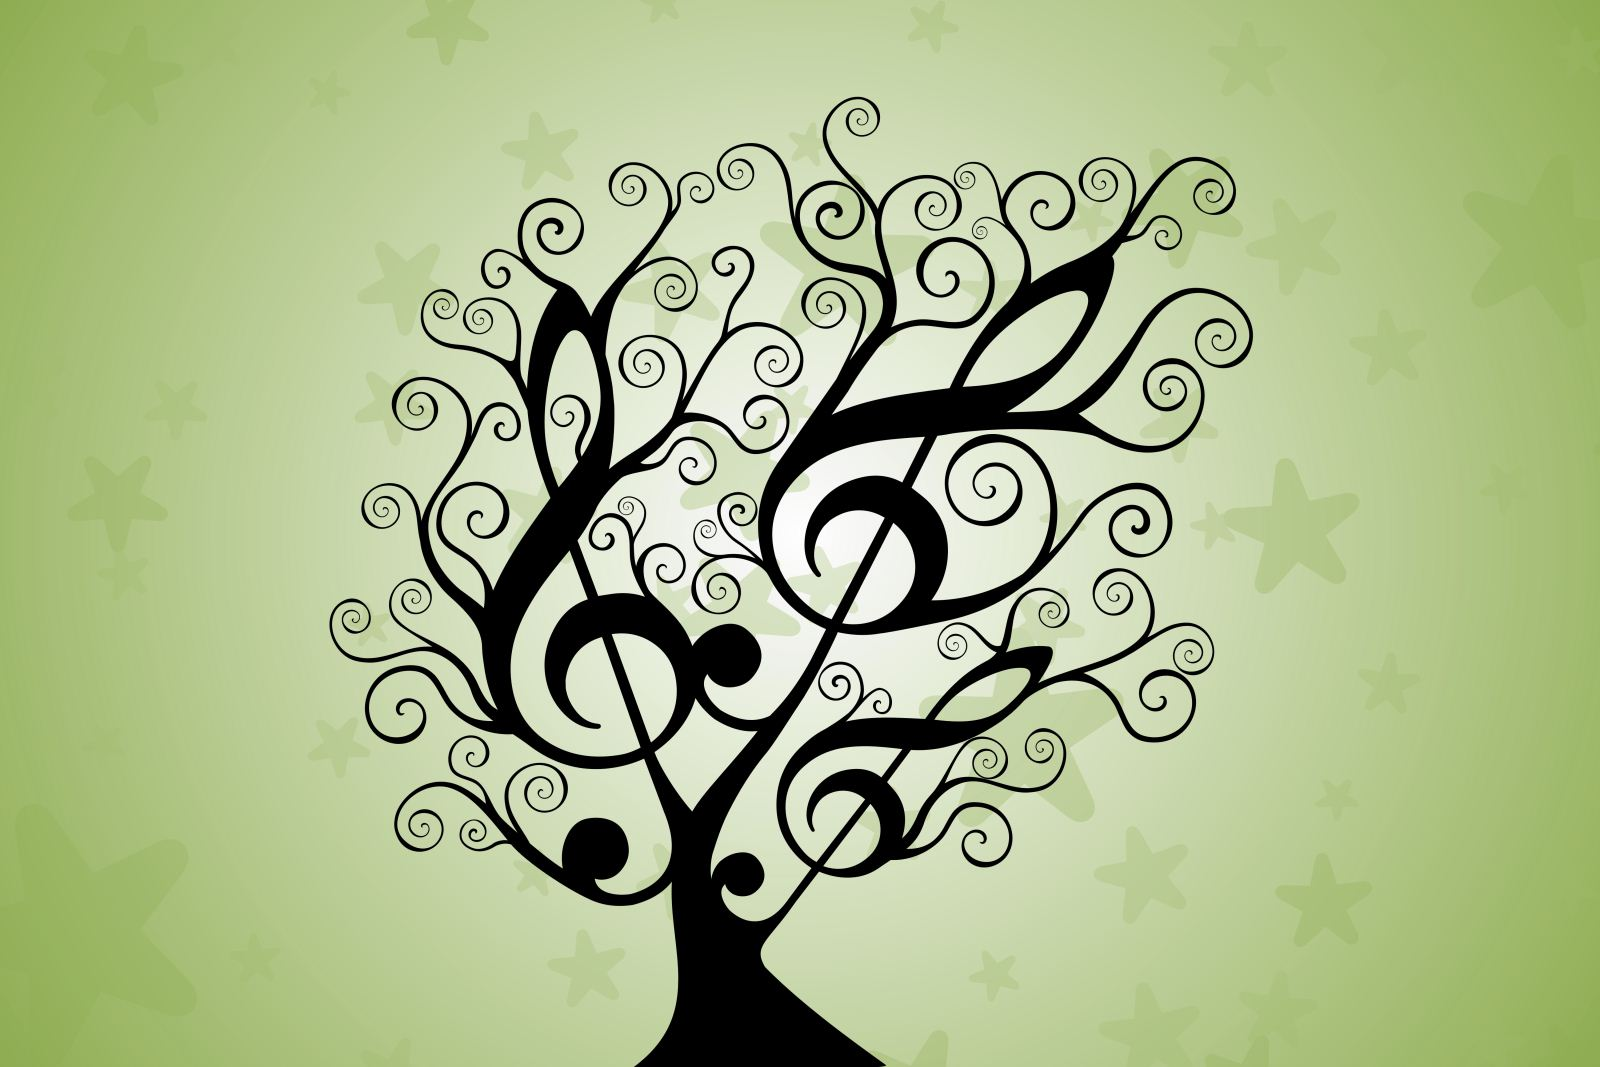 band concert clipart - photo #32